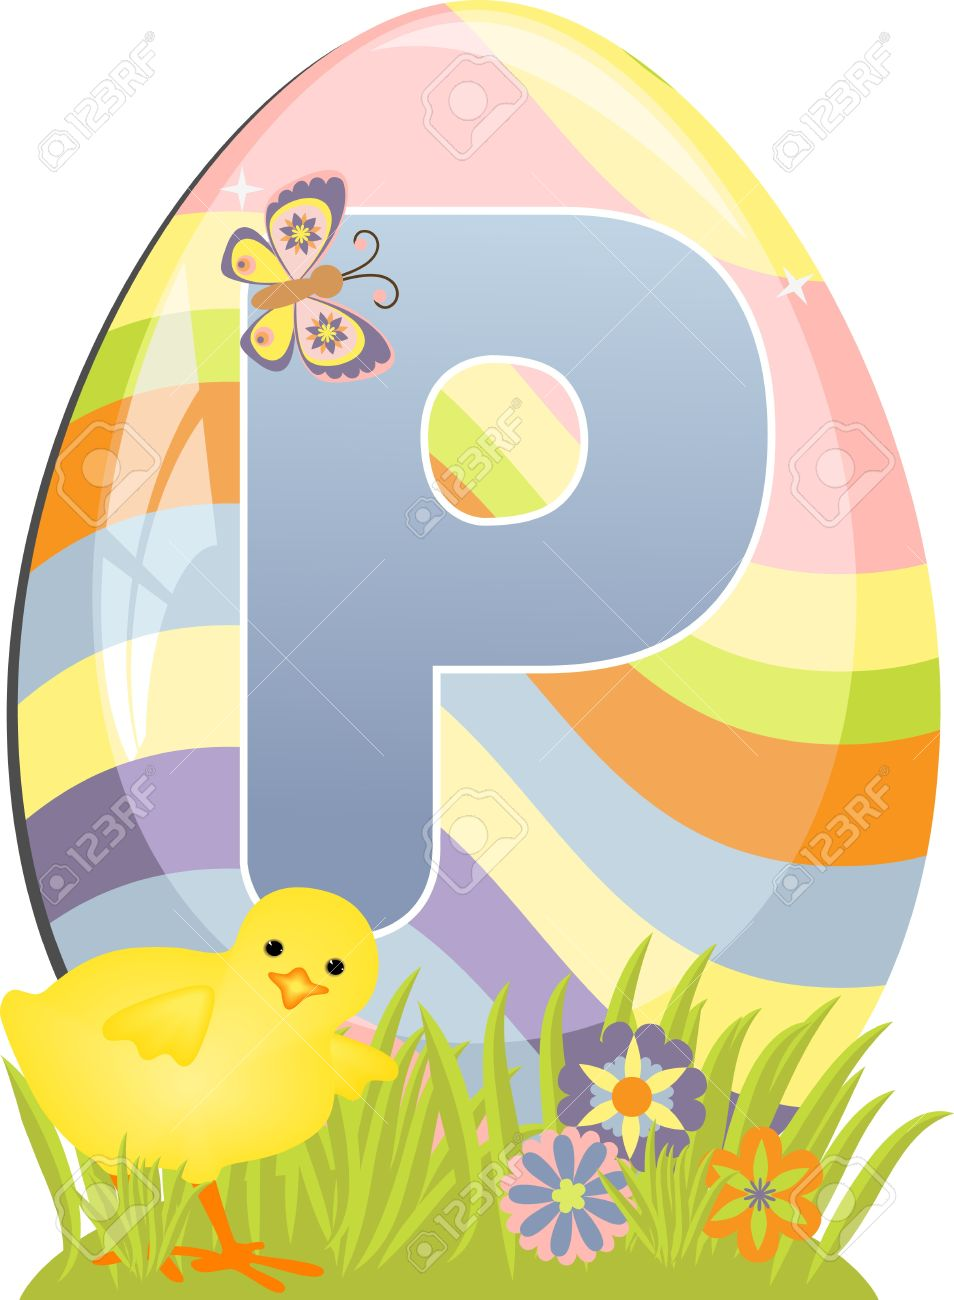 Cute Initial Letter P For Easter Design